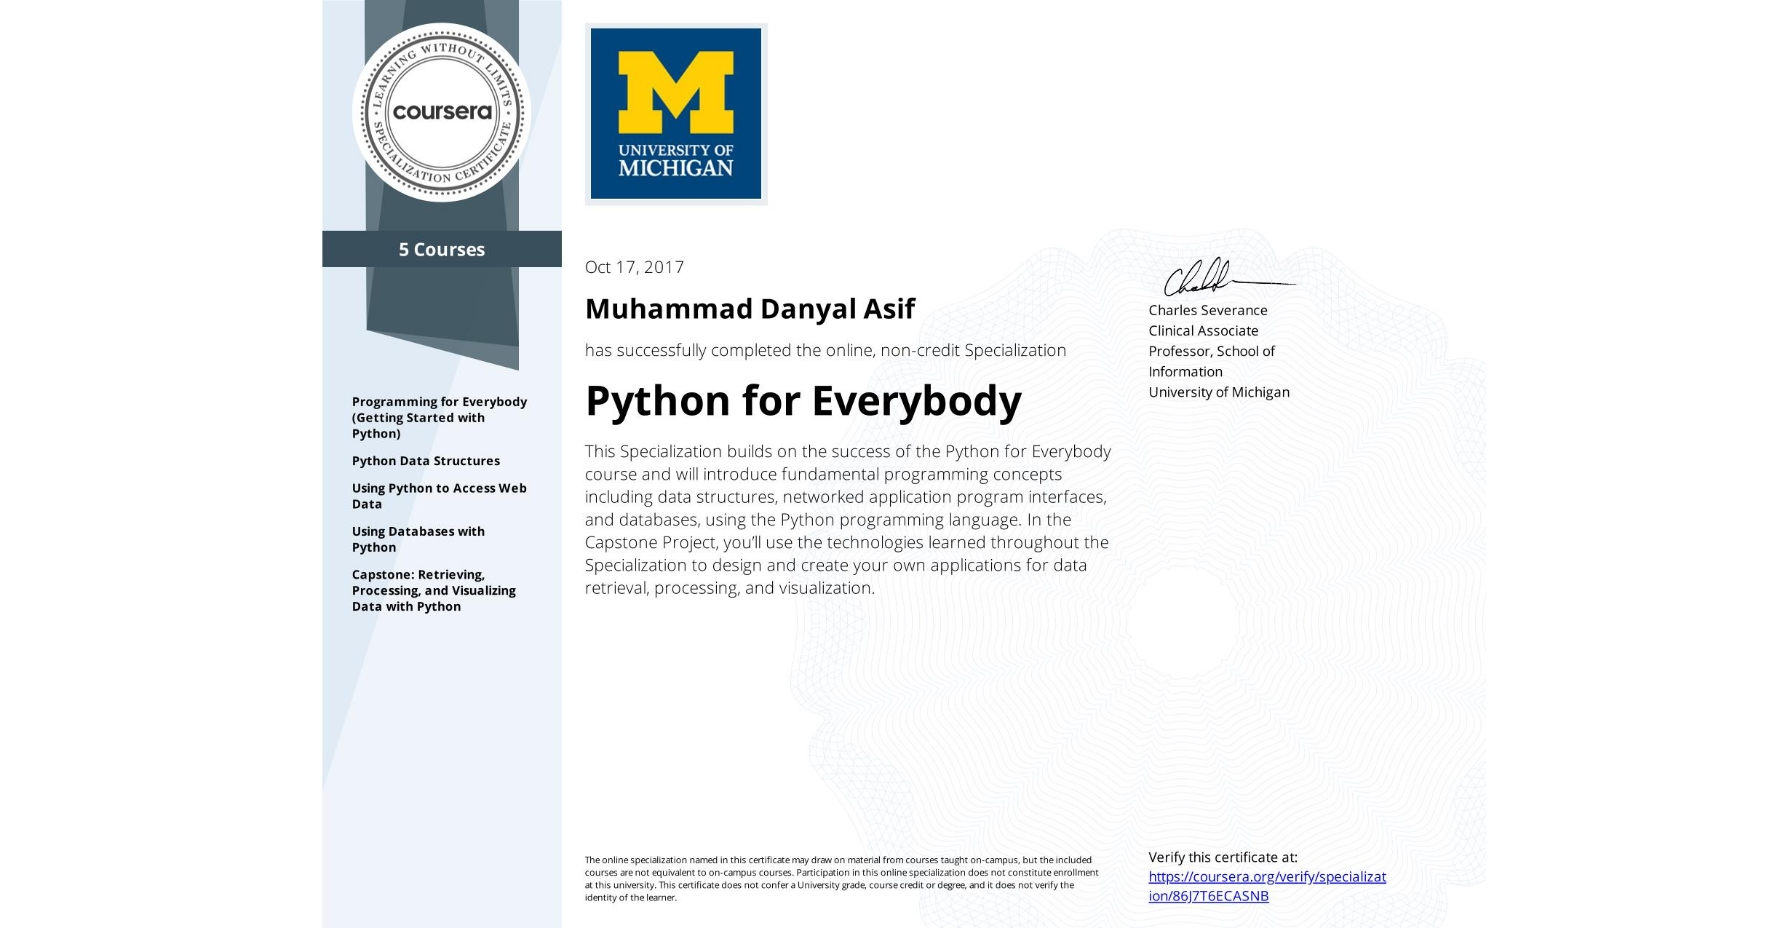 View certificate for Muhammad Danyal  Asif, Python for Everybody, offered through Coursera. This Specialization builds on the success of the Python for Everybody course and will introduce fundamental programming concepts including data structures, networked application program interfaces, and databases, using the Python programming language. In the Capstone Project, you'll use the technologies learned throughout the Specialization to design and create your own applications for data retrieval, processing, and visualization.